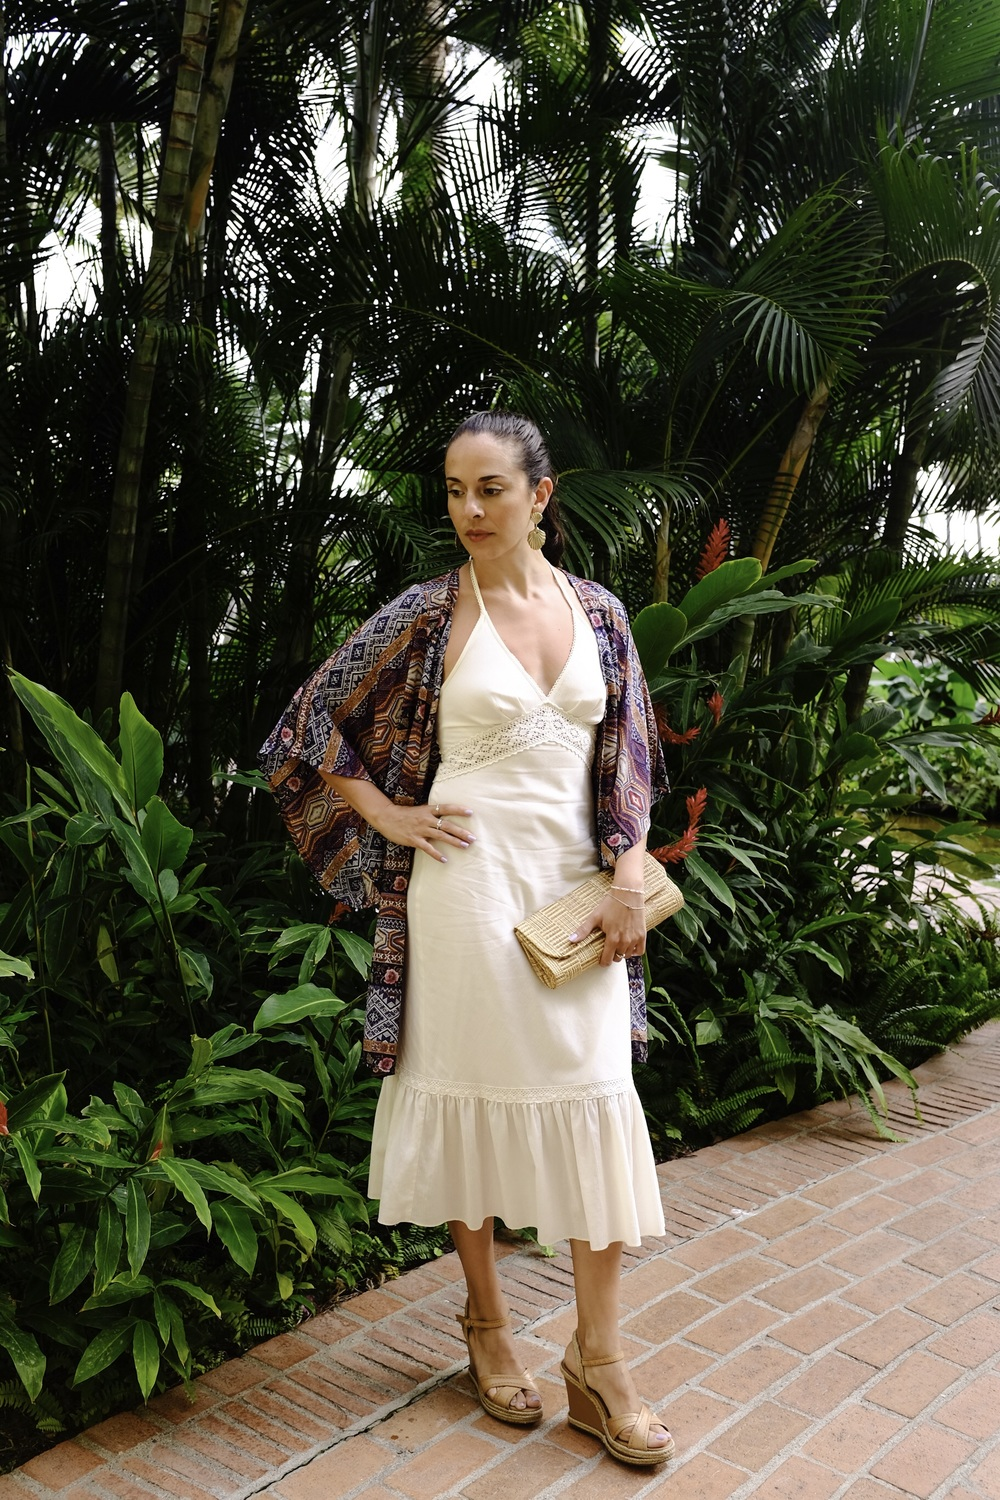 Express lacy hater dress with Arezzo nude wedges, and Forever 21 boho robe. Clutch and earrings from a small boutique in Brazil. Photography by Francisco Graciano.